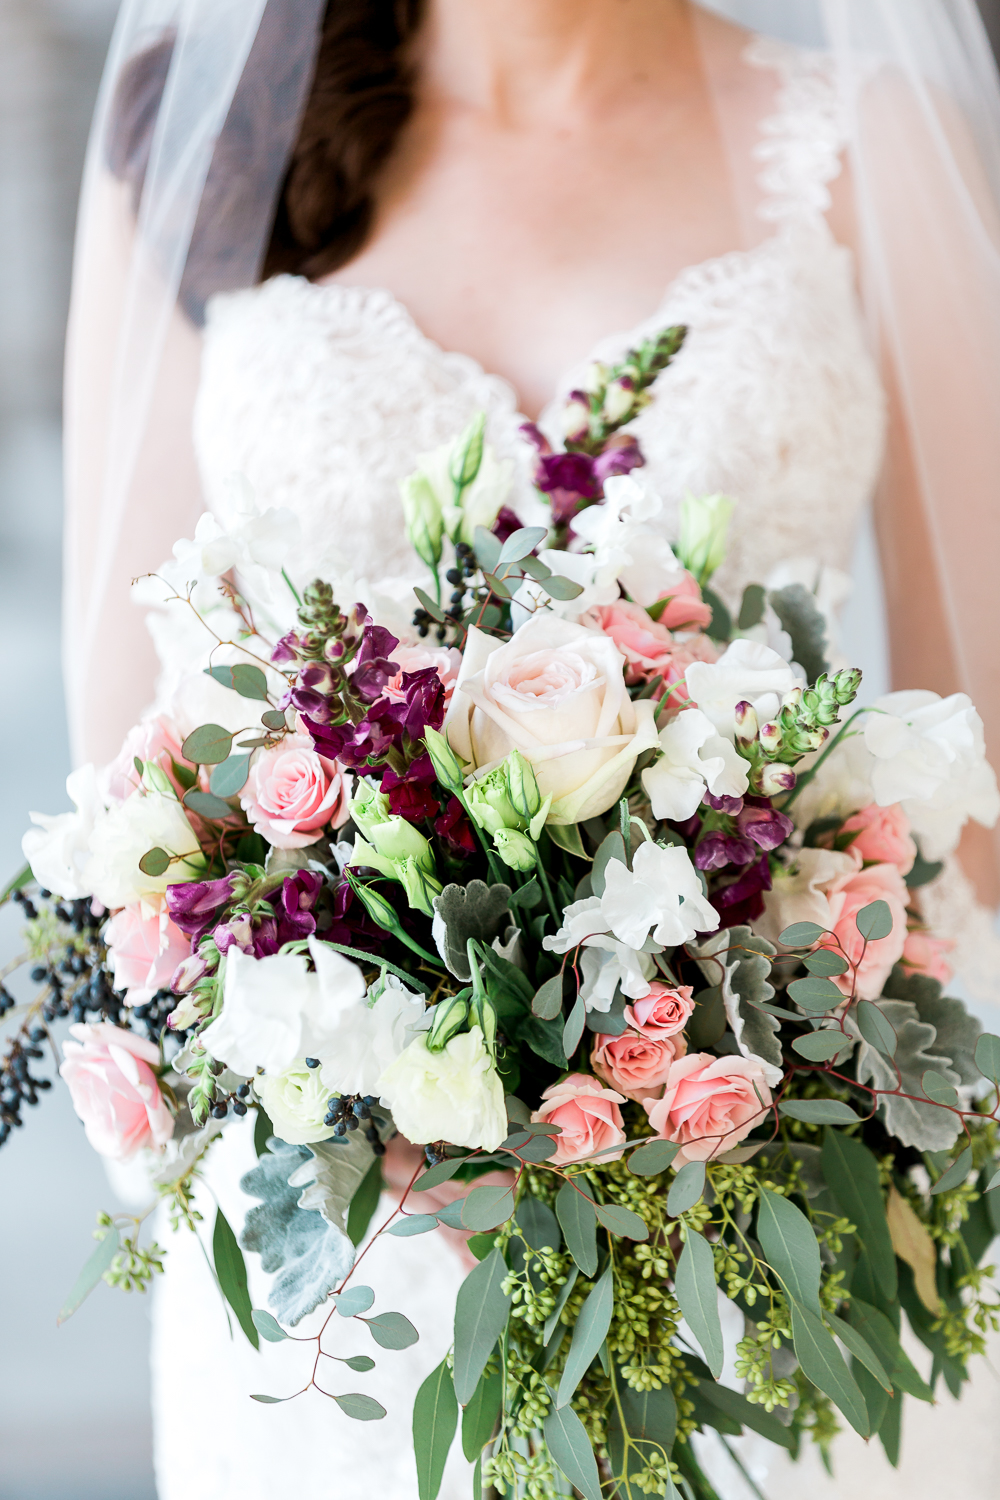 Stunning flower bouquet by Floral Works